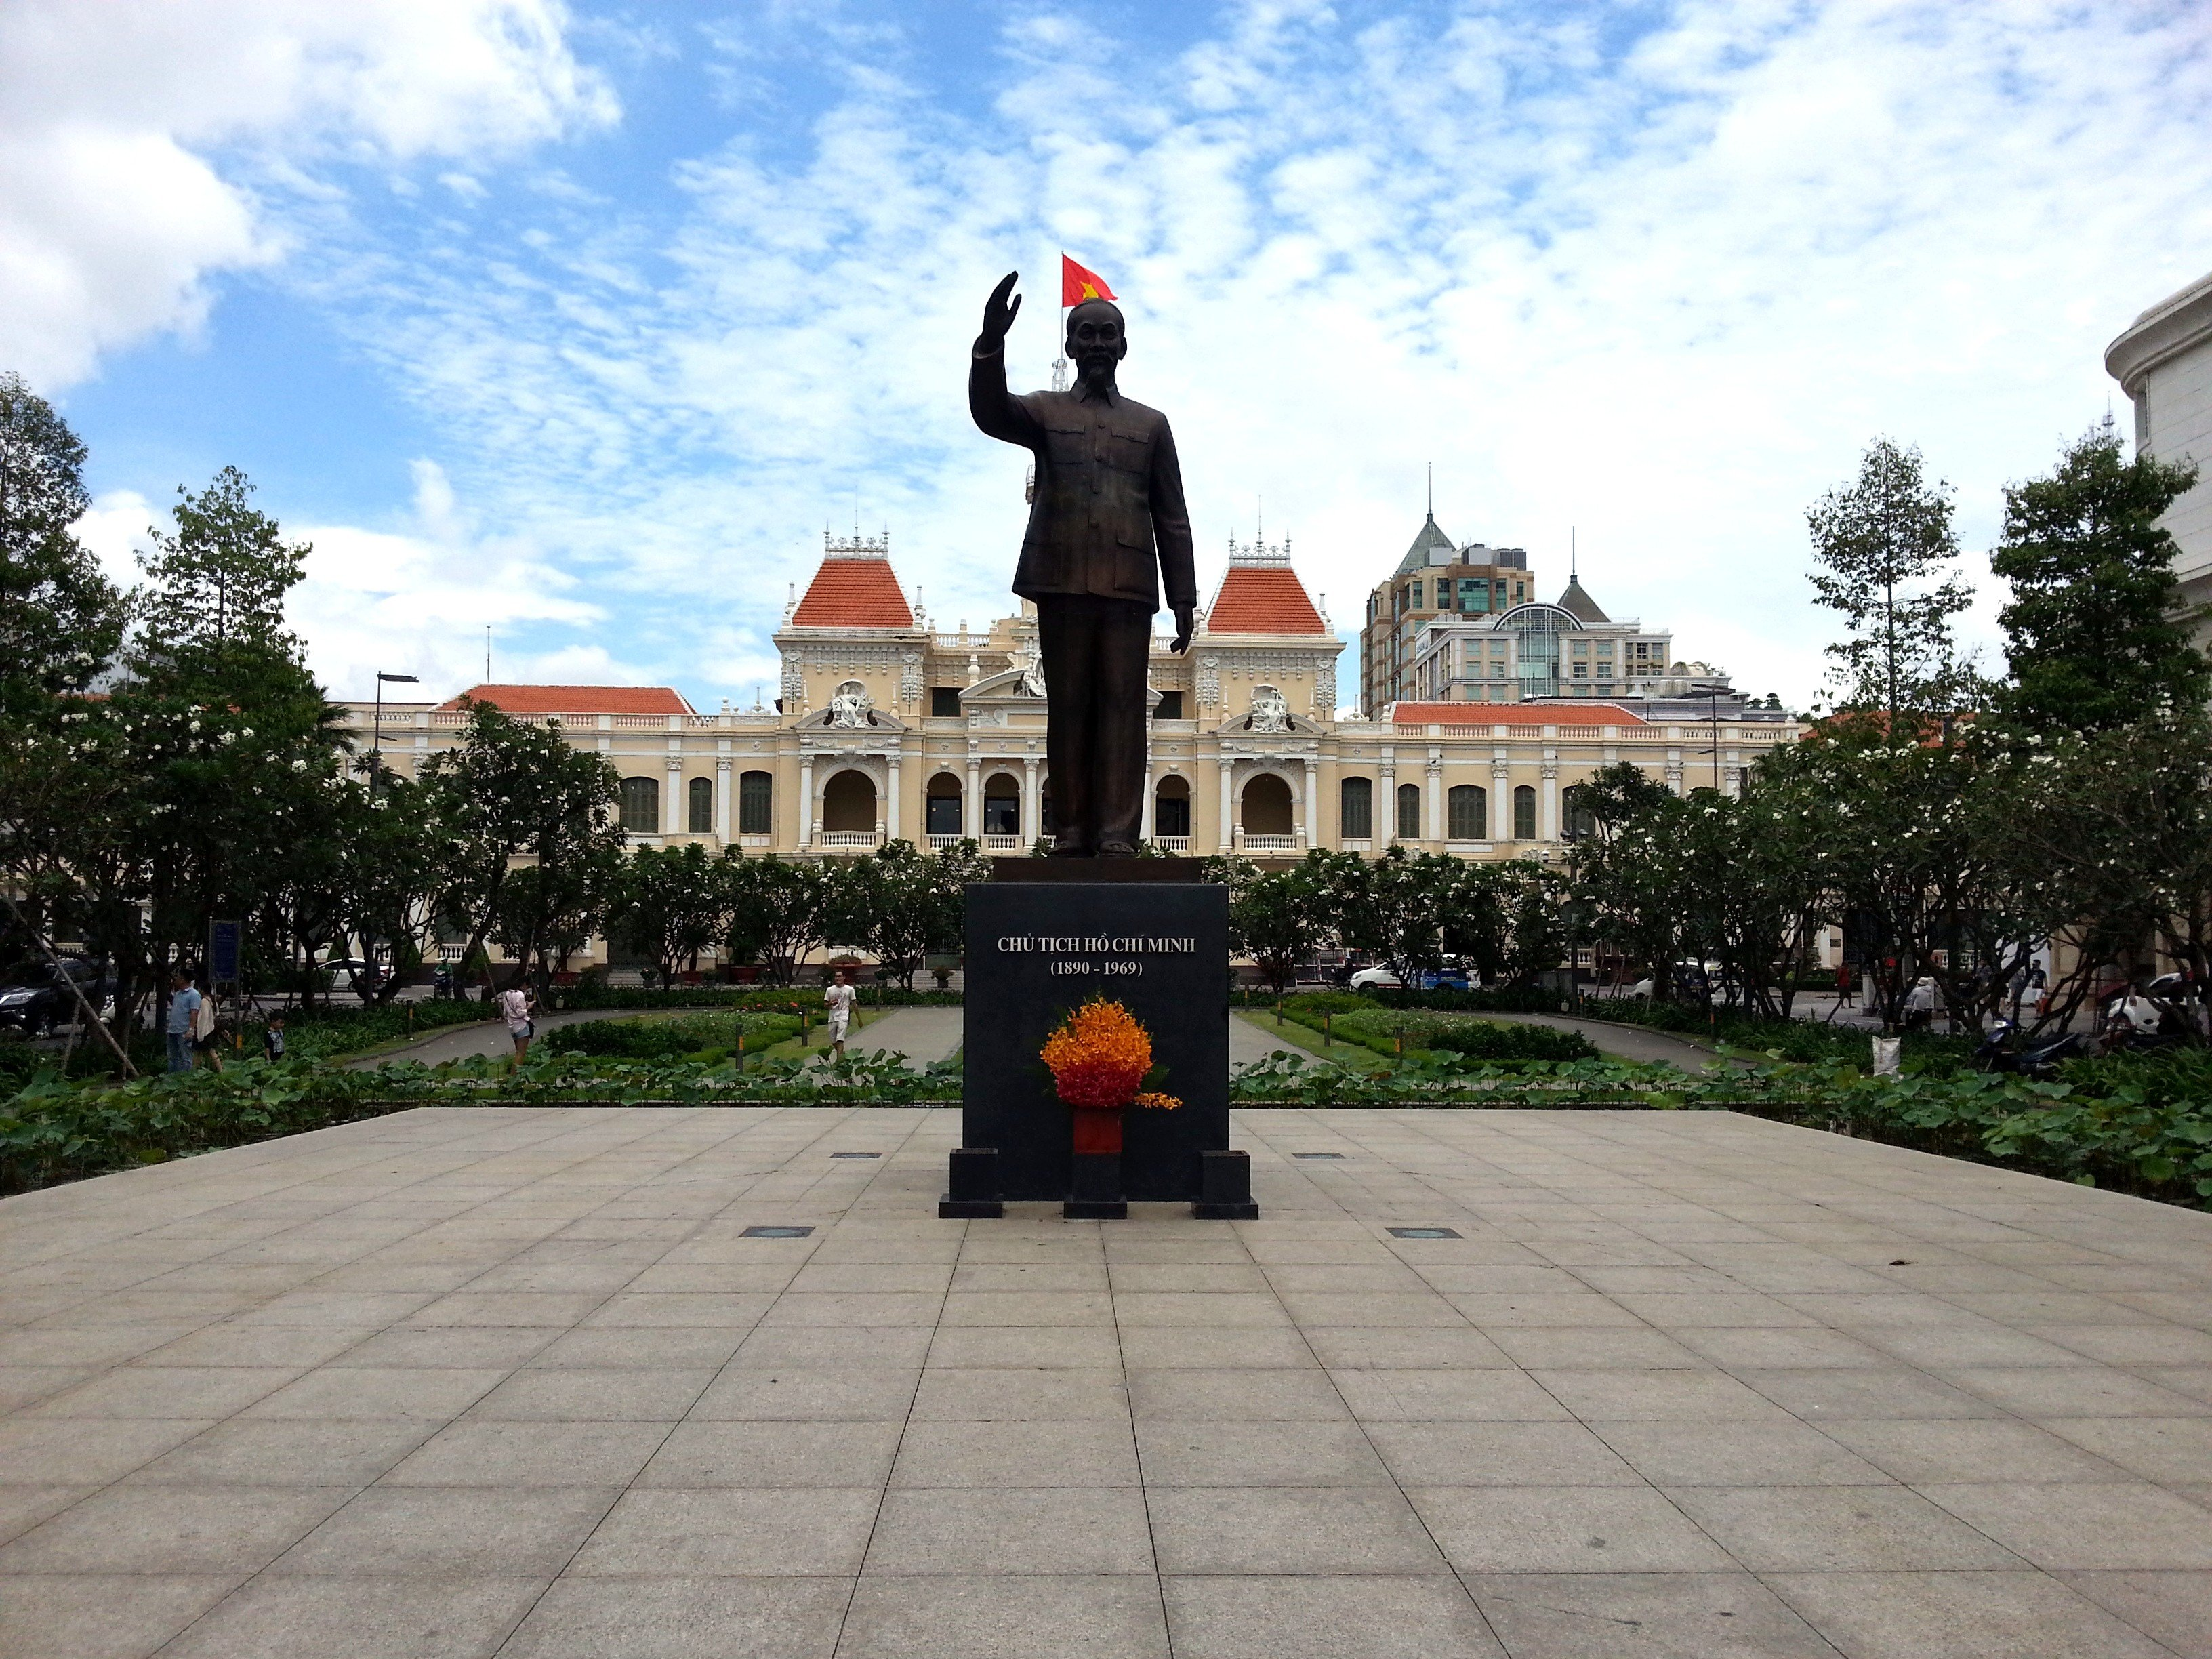 Ho Chi Minh Statue in front of Saigon City Hall